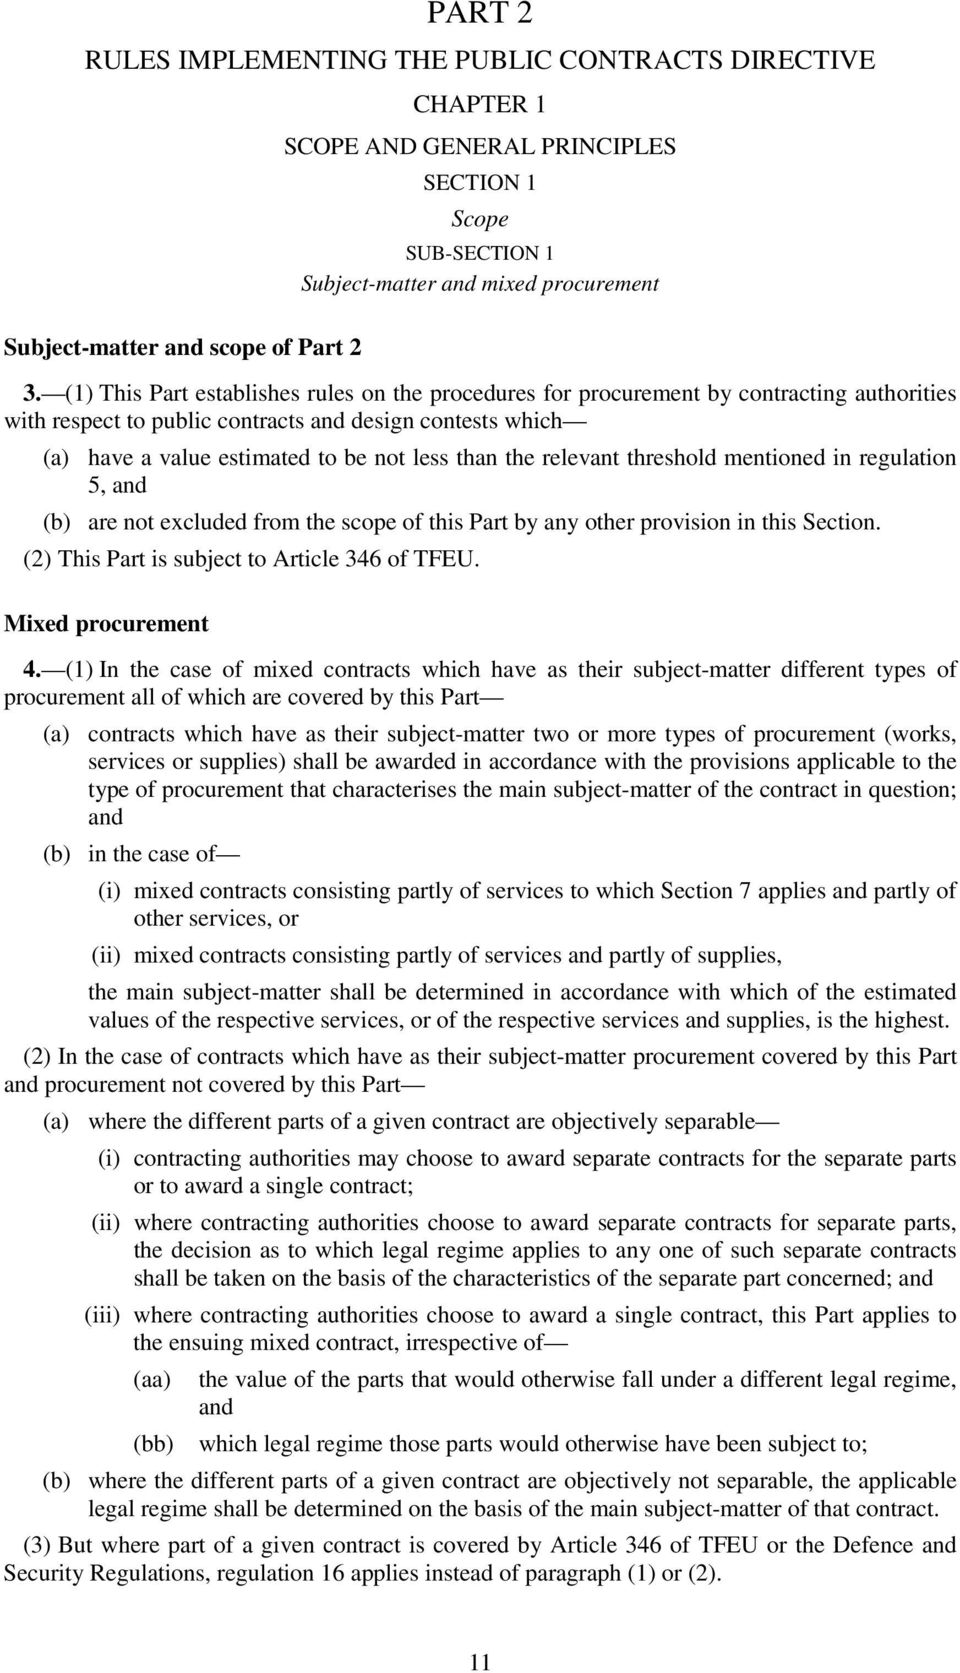 the relevant threshold mentioned in regulation 5, and (b) are not excluded from the scope of this Part by any other provision in this Section. (2) This Part is subject to Article 346 of TFEU.